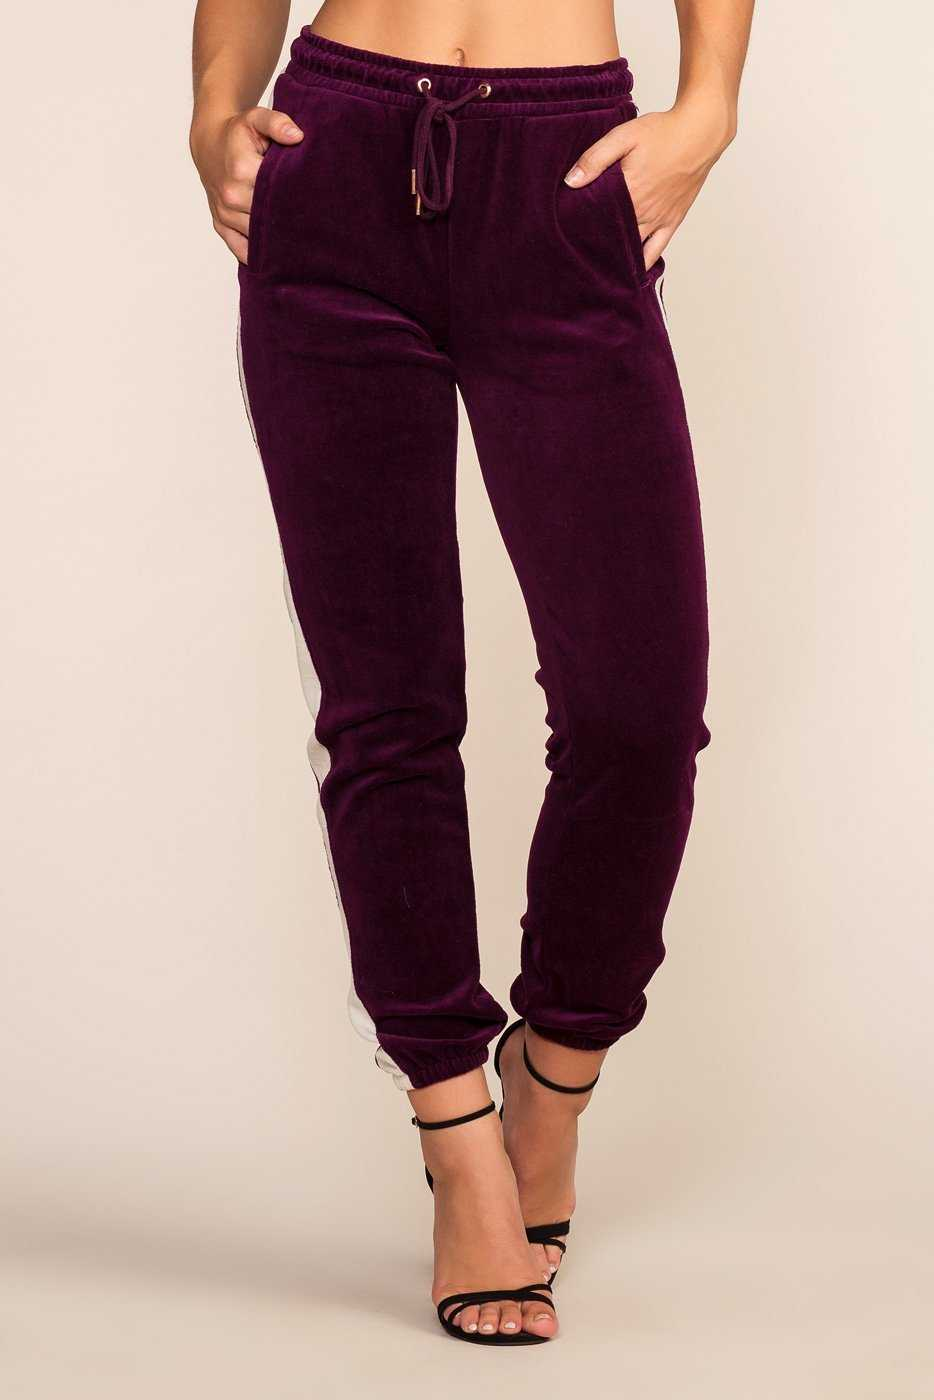 Pants - Track It Joggers - Plum